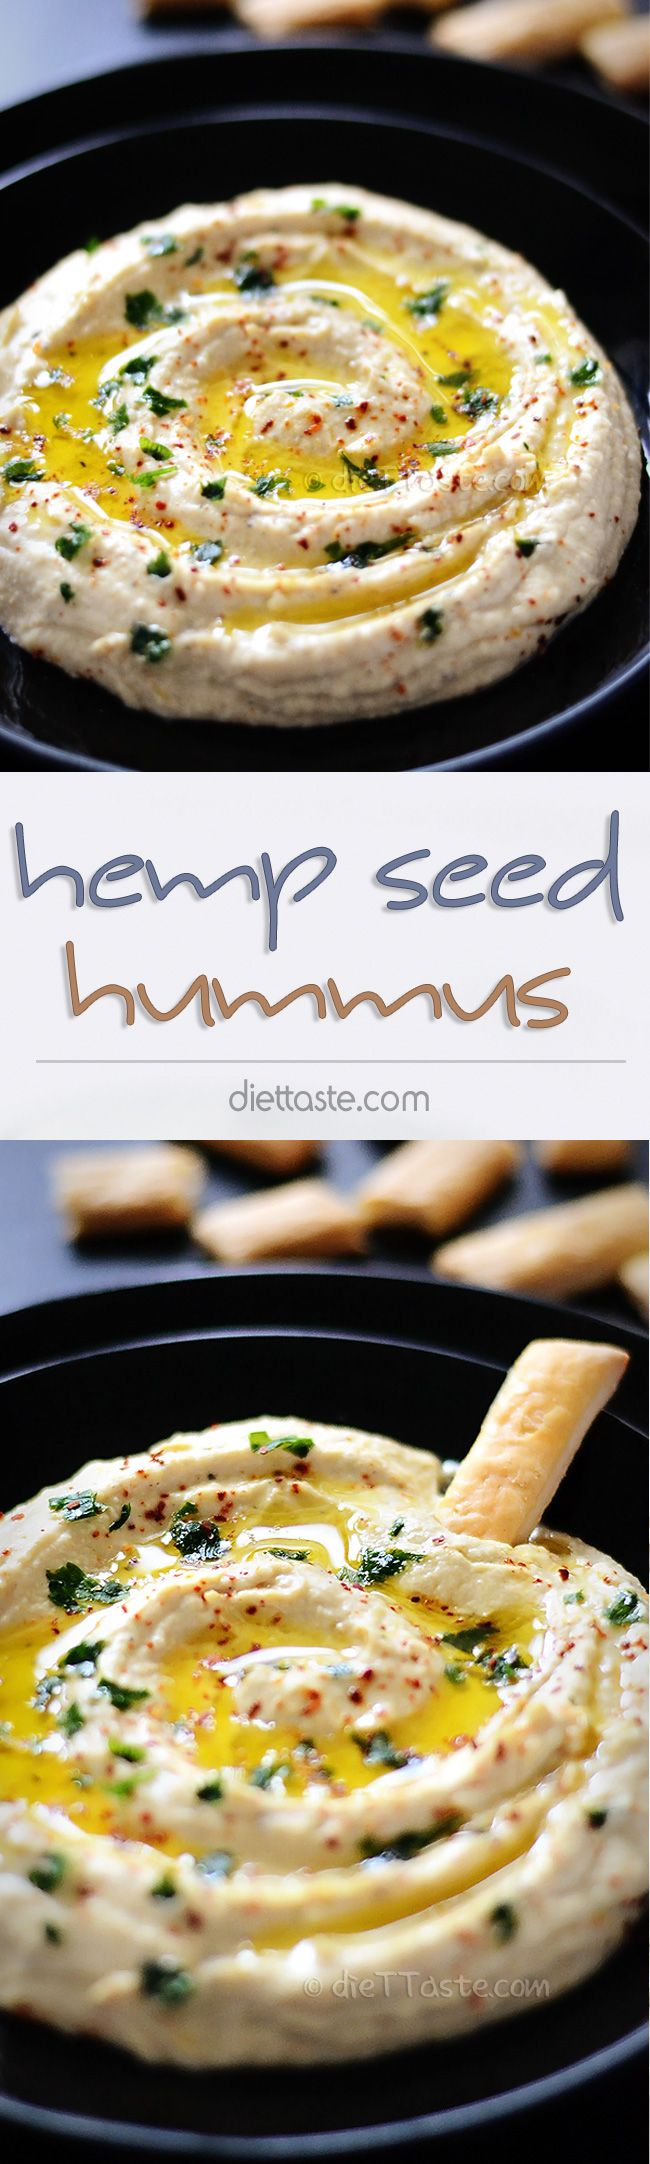 Hemp Seed Hummus - vegan, low carb, with healthy fats; great as a dip, a sandwich spread or a filling for pita bread or tortillas - diettaste.com | Vegan, Gluten-Free Plant-Based Recipes